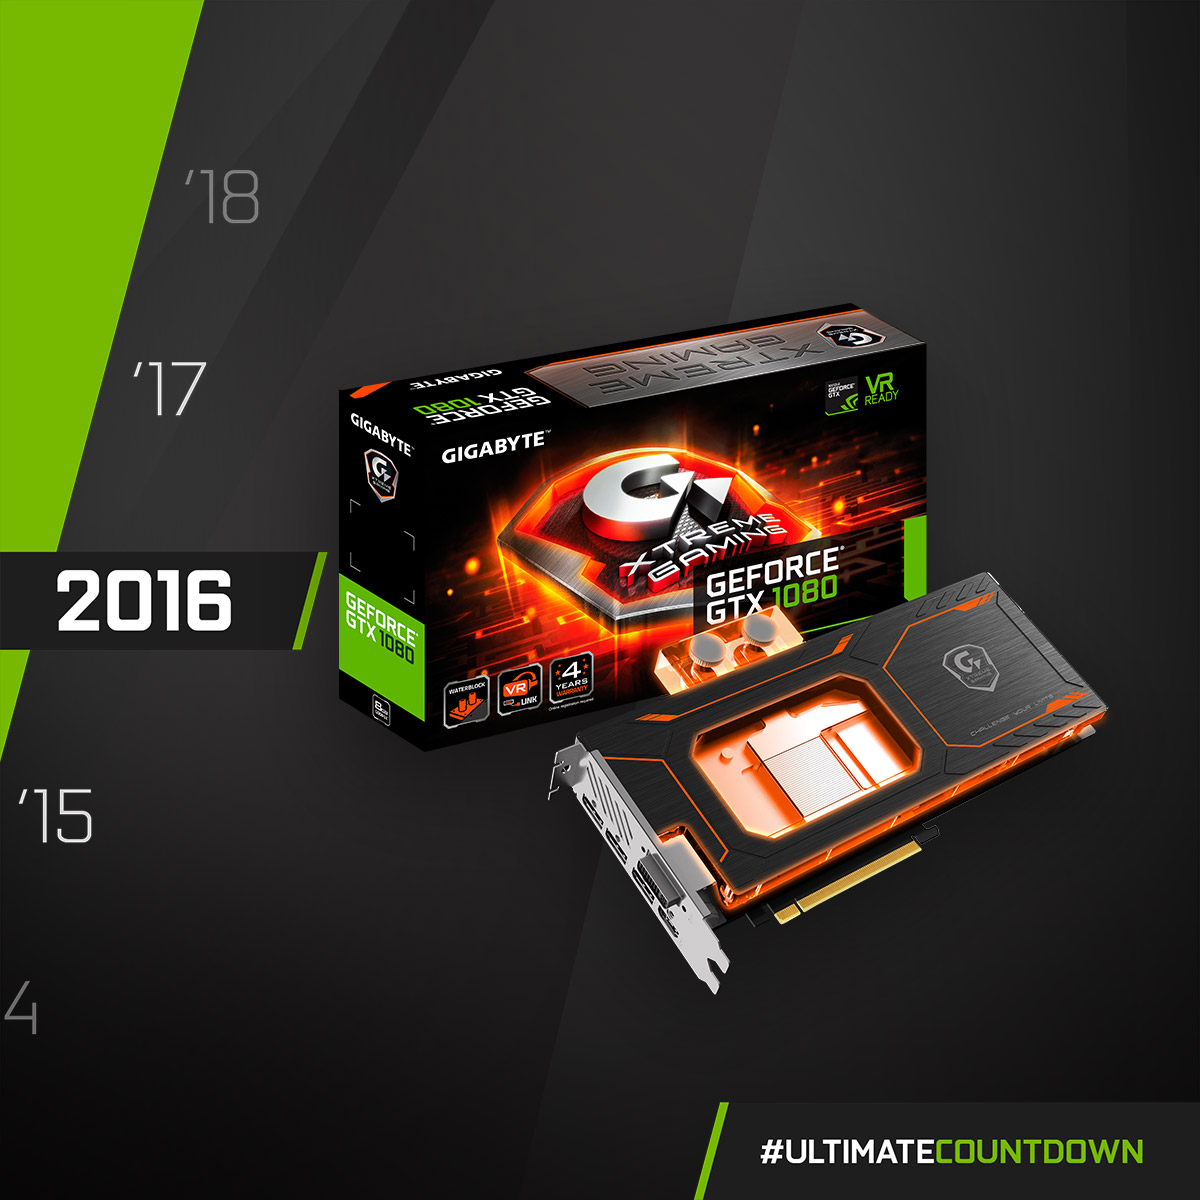 NVIDIA GeForce GTX 1080 - 2016  For custom water-cooled PC lovers! GIGABYTE pre-installed a high-performance full-cover water block for the GTX 1080!  #UltimateCountdown #UltimateAORUS #GIGABYTE https://t.co/8g0C82EFbQ